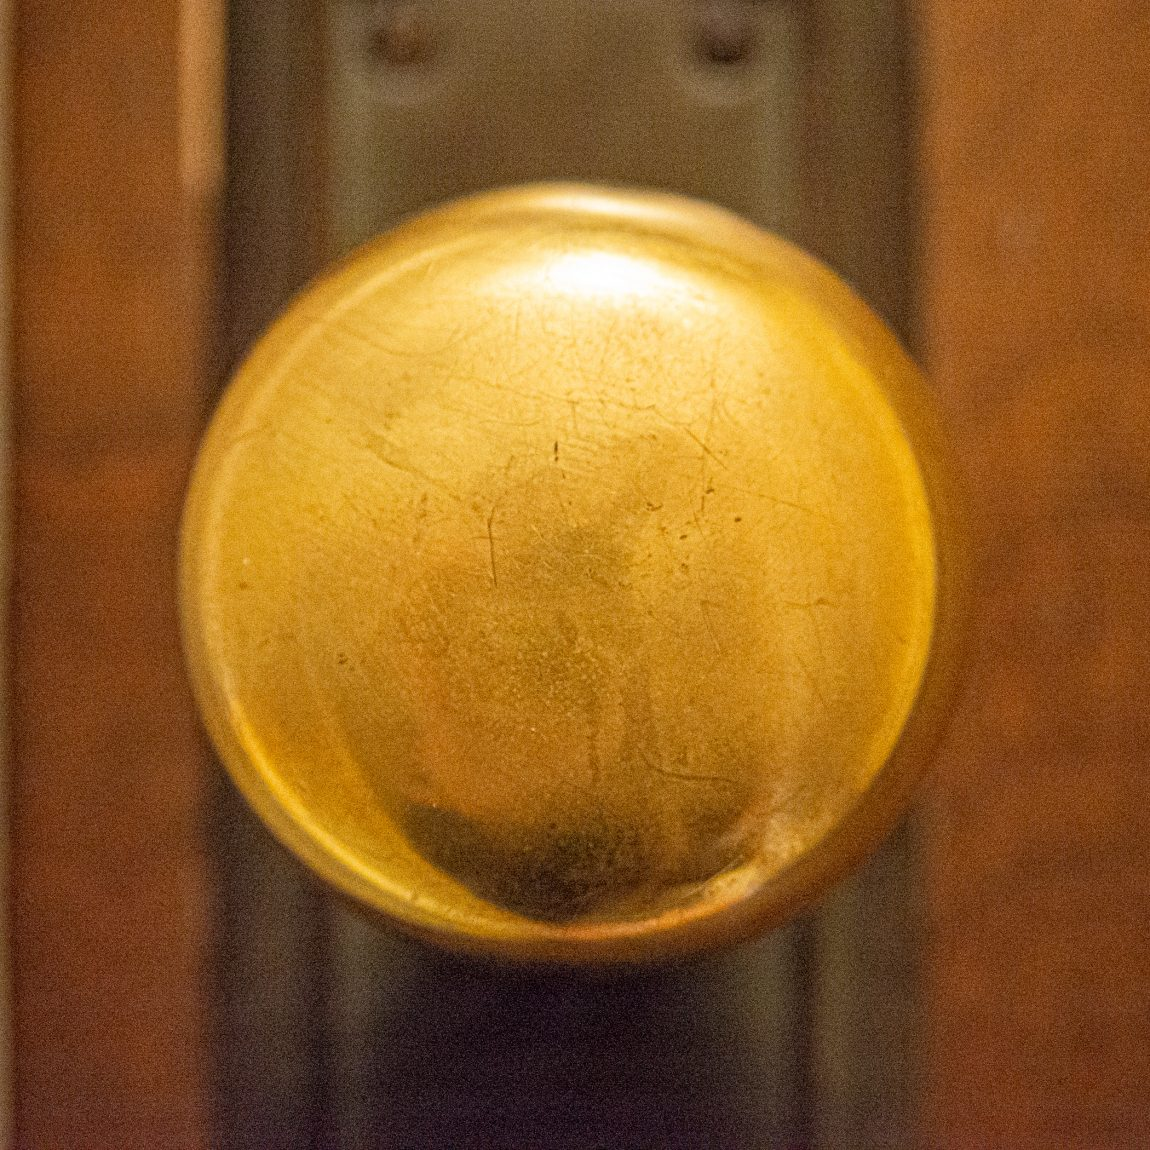 Door knobs of my house: 1st floor staircase, inside